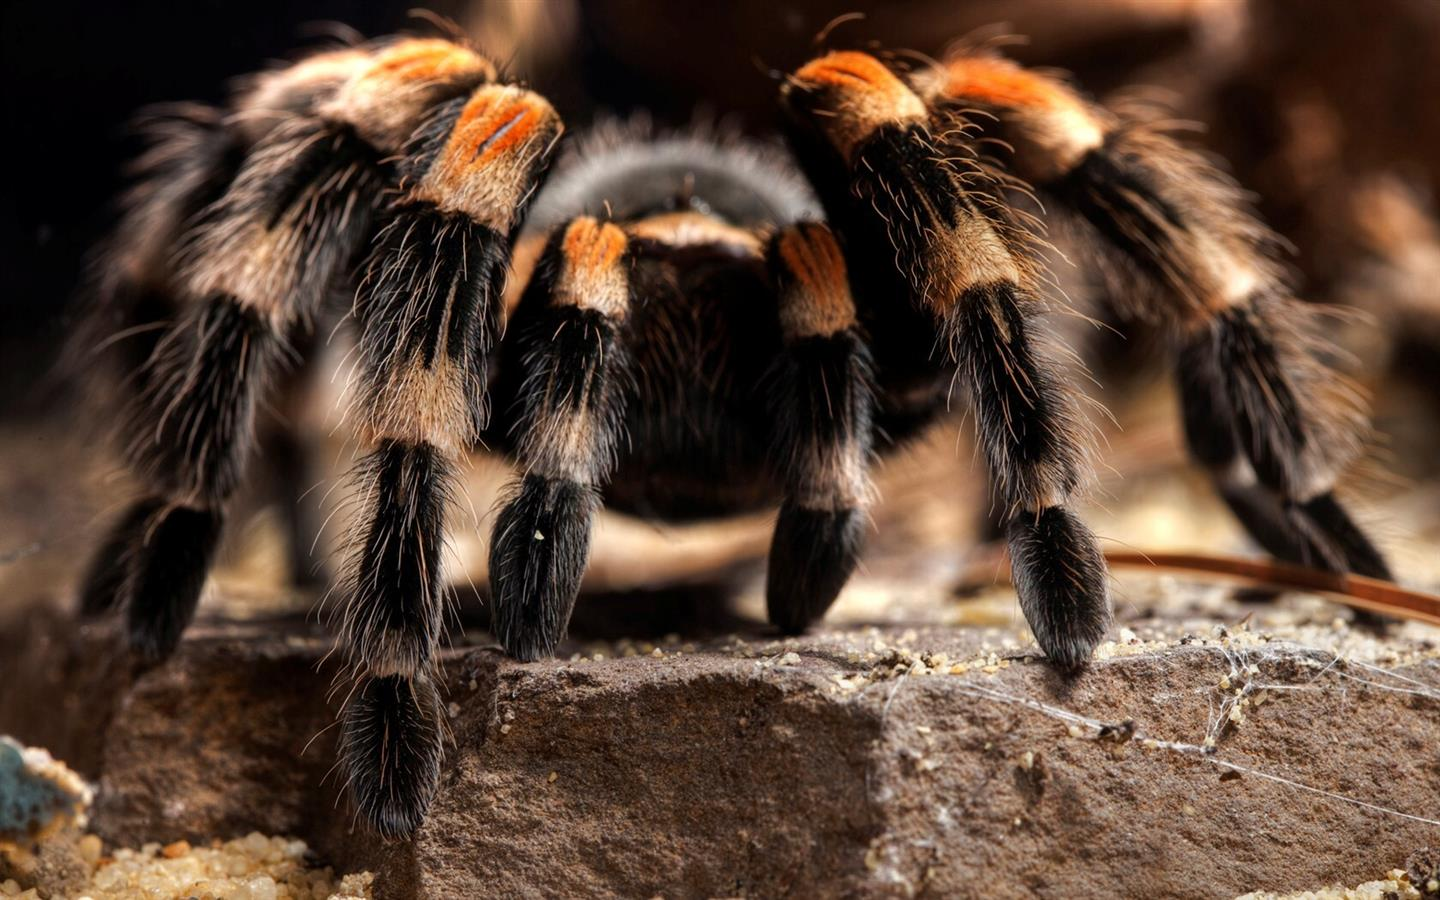 1440x900 Big Hairy Spider Photo